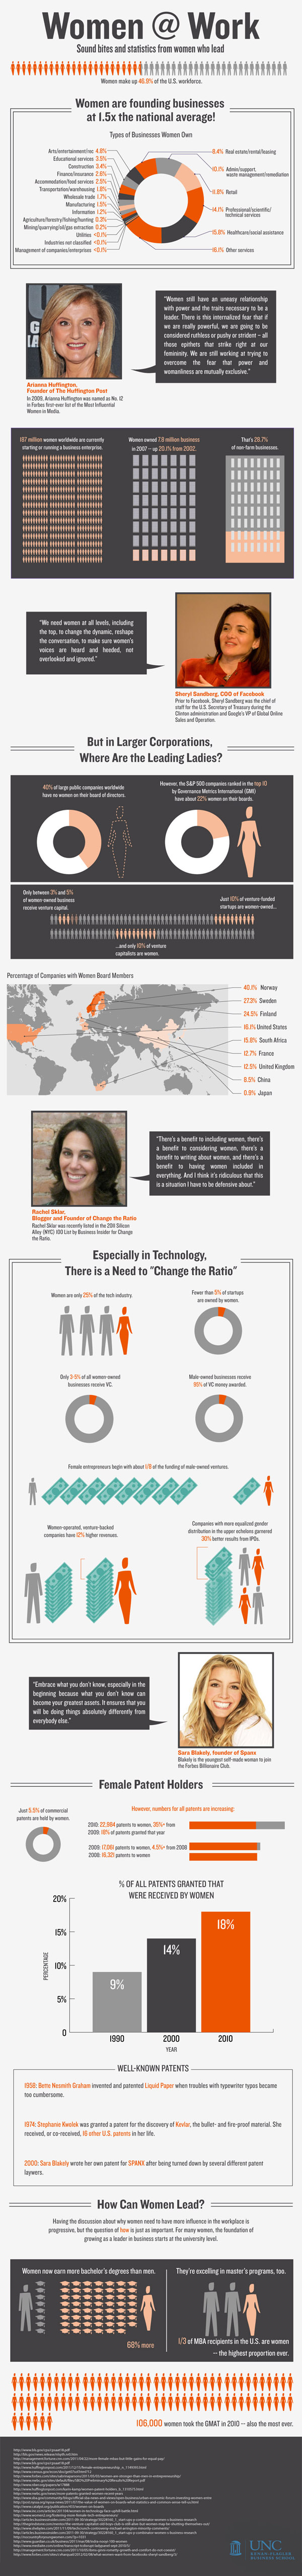 Women at Work Infographic Via MBA@UNC